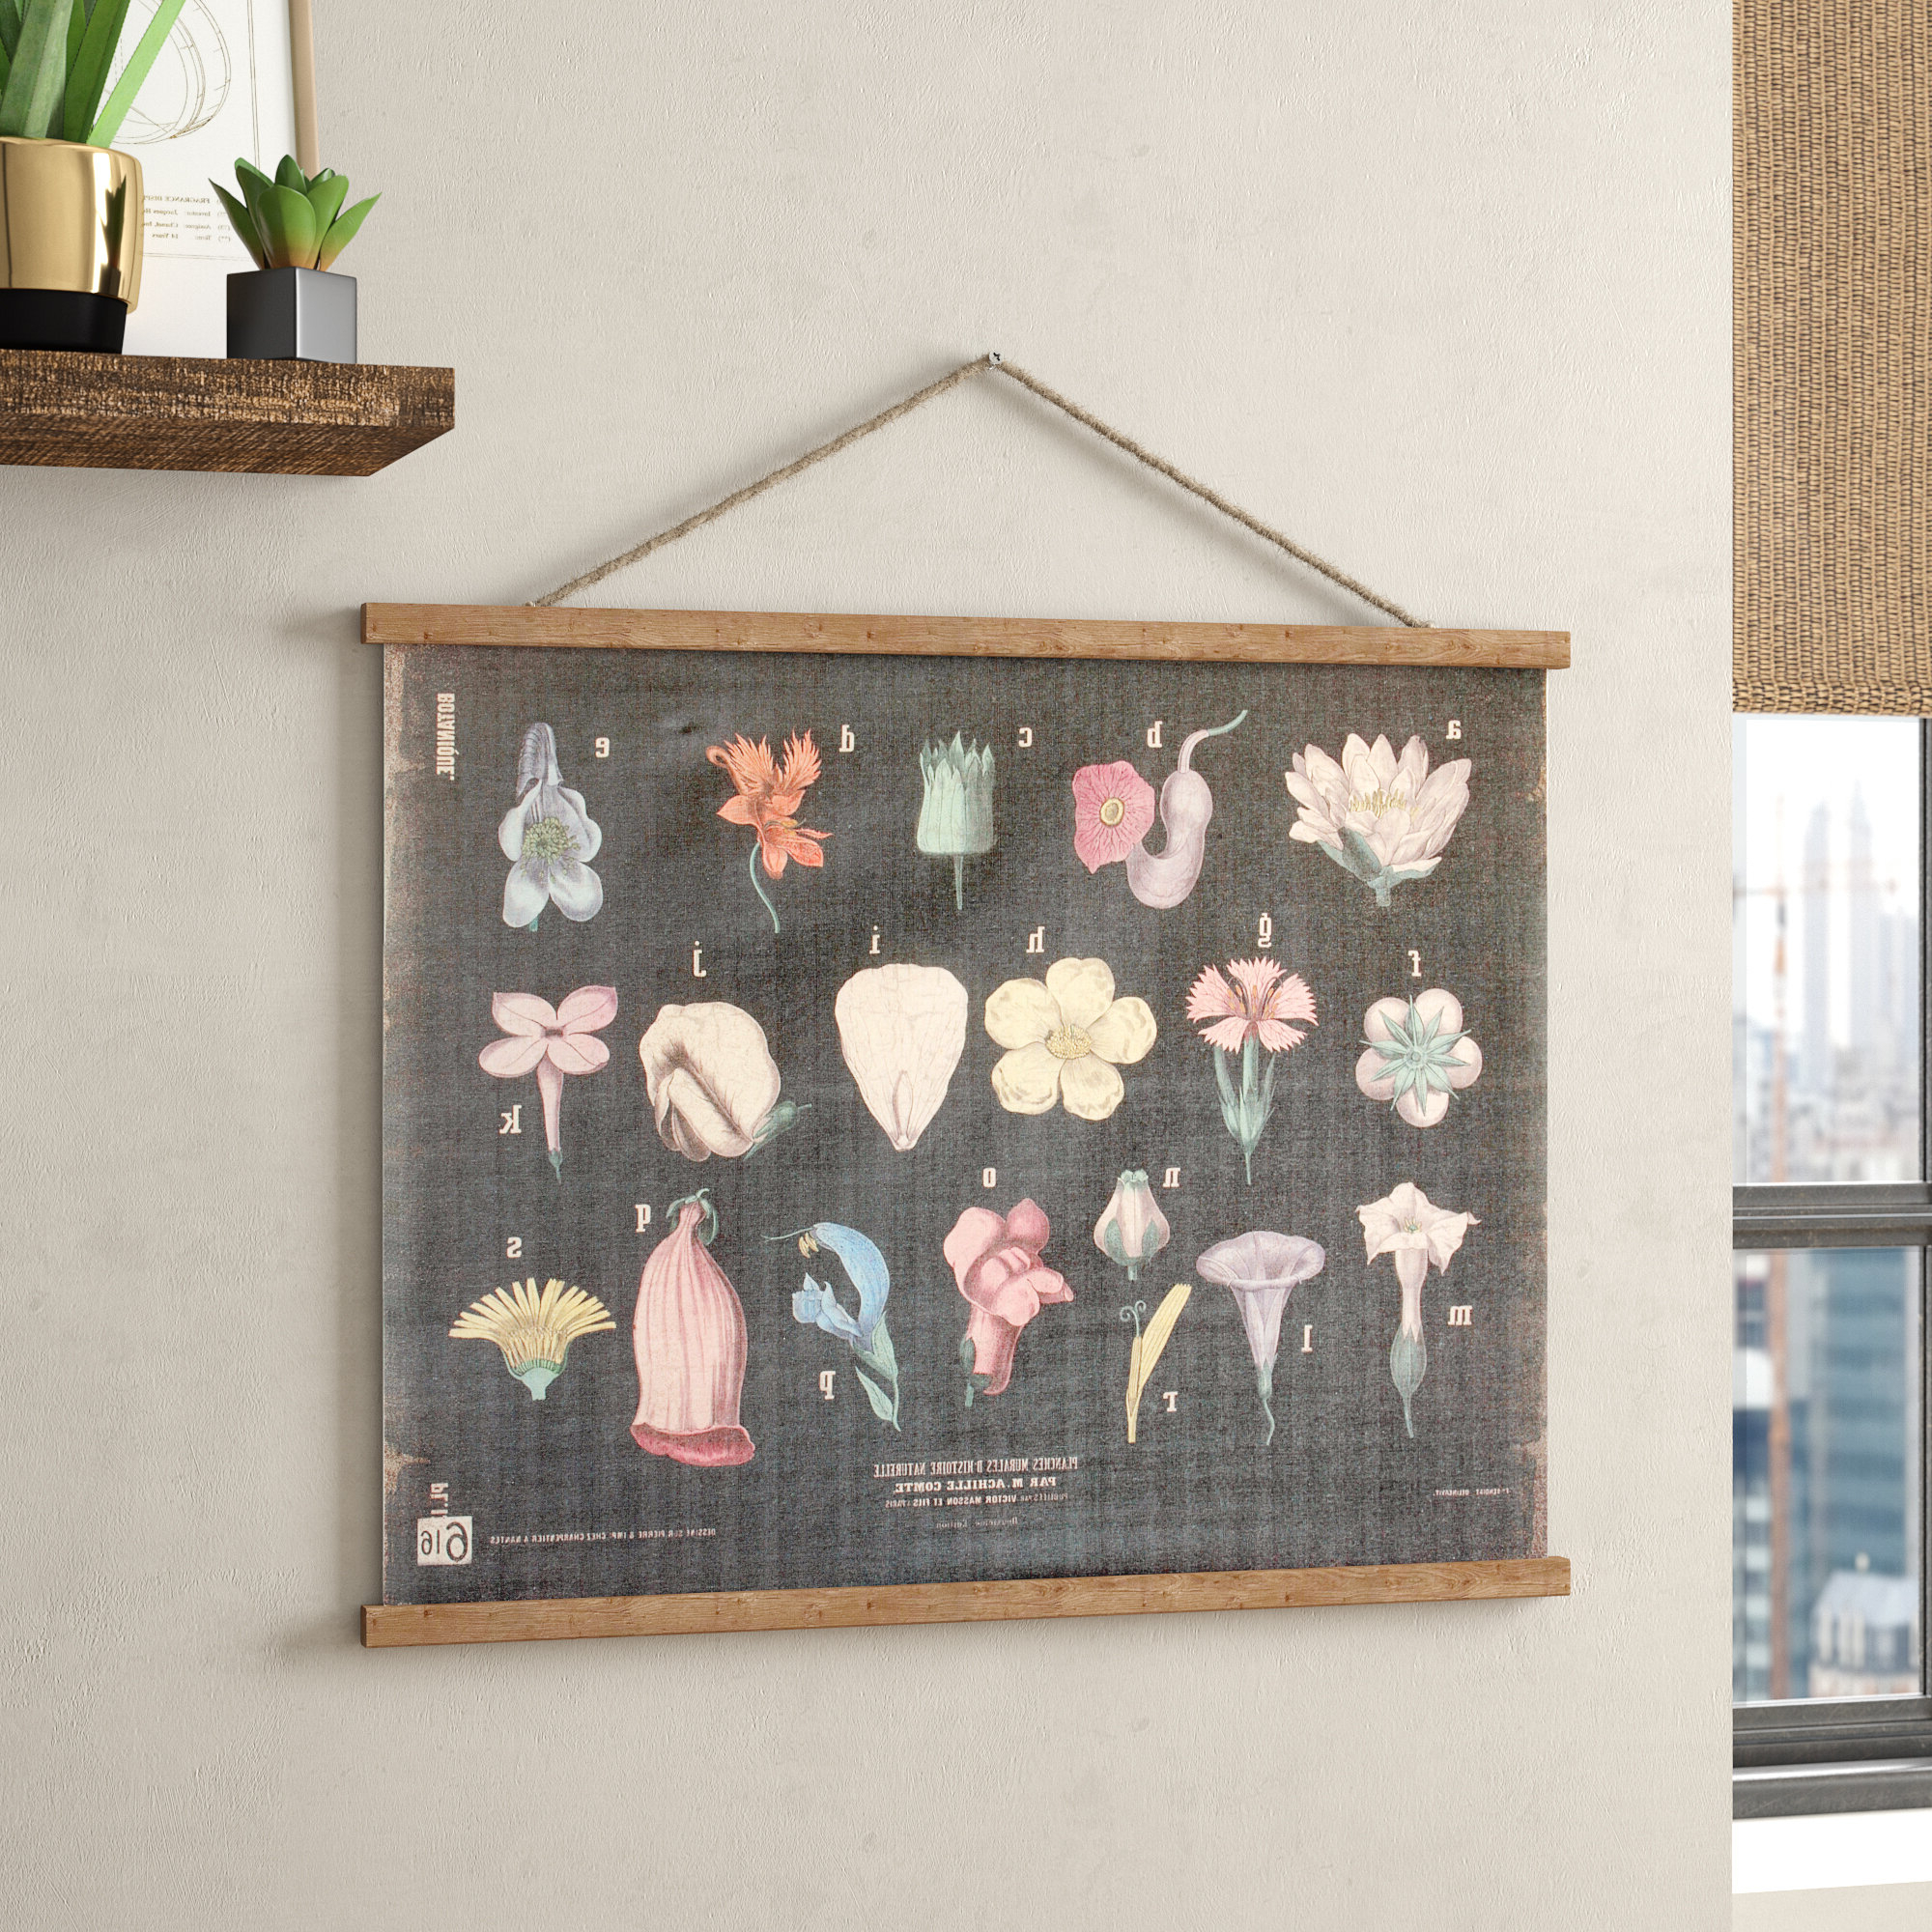 Widely Used Blended Fabric Tapestries You'll Love In (View 12 of 20)